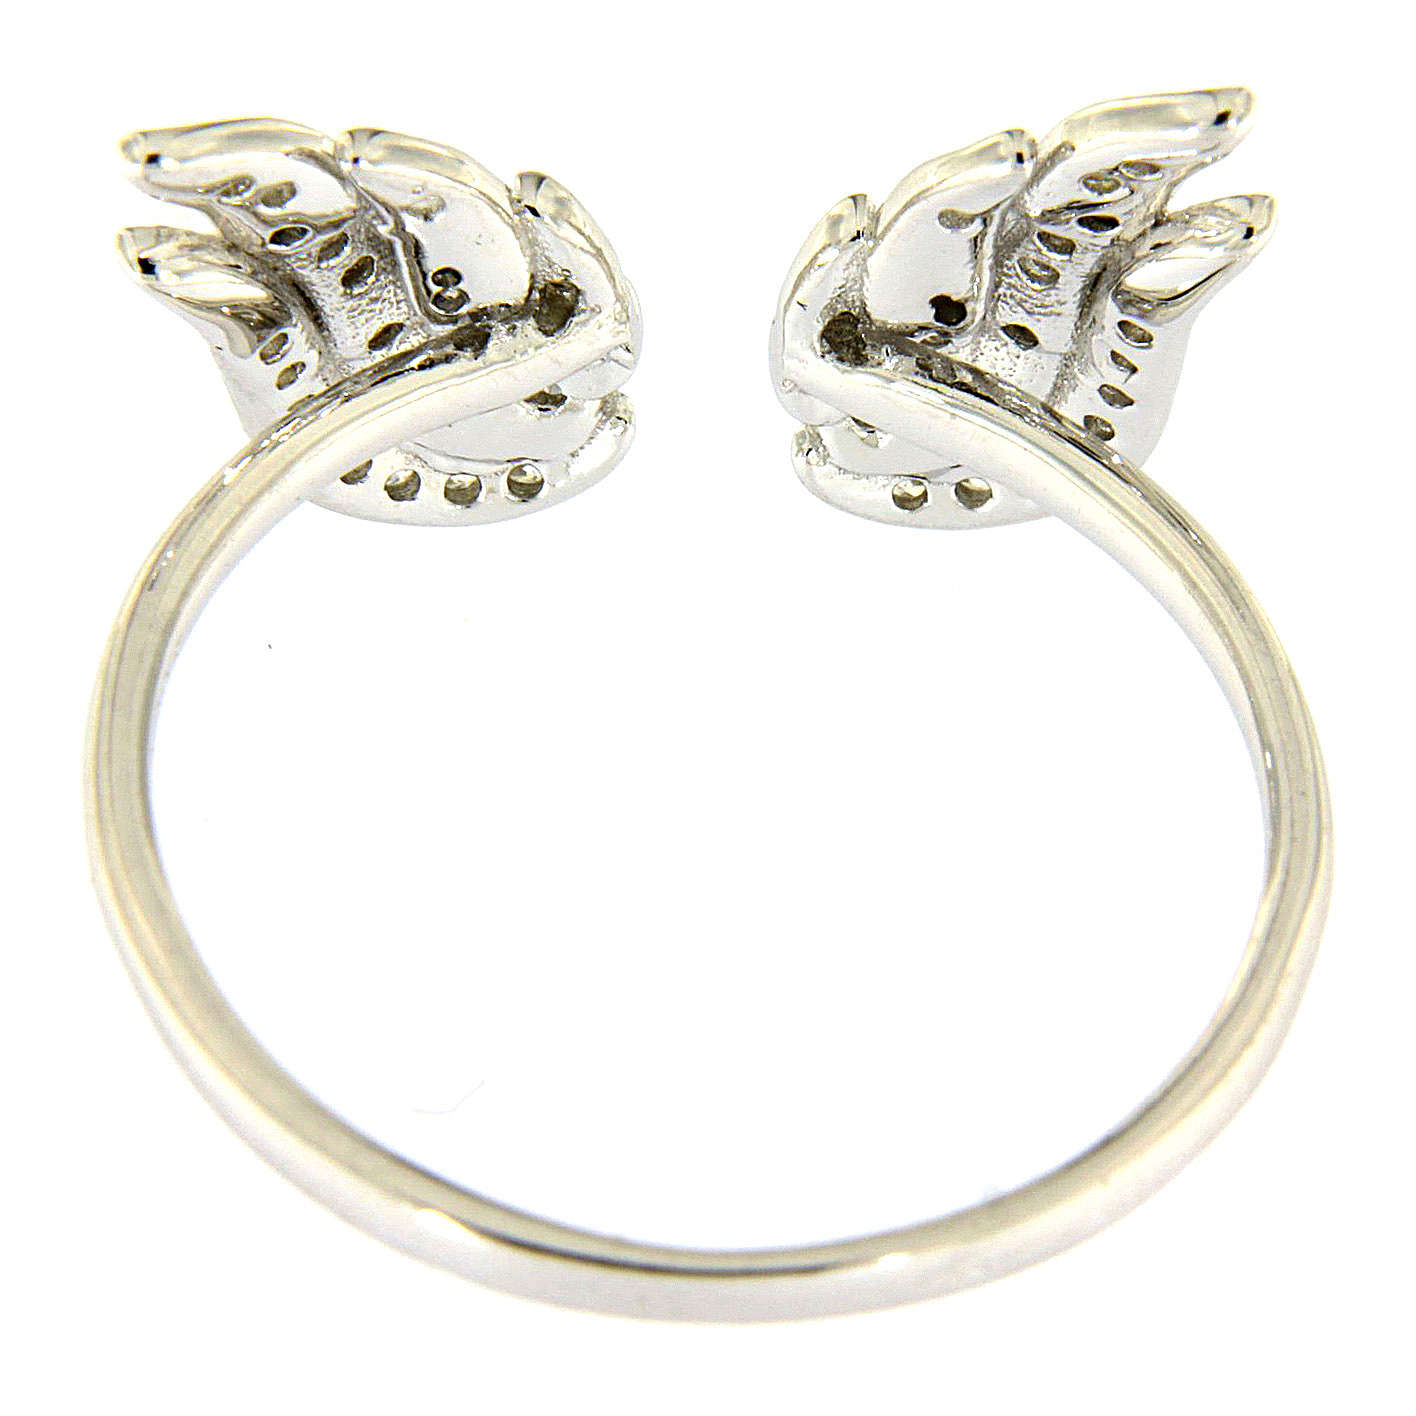 AMEN 925 sterling silver ring finished in rhodium with zirconate wings 3